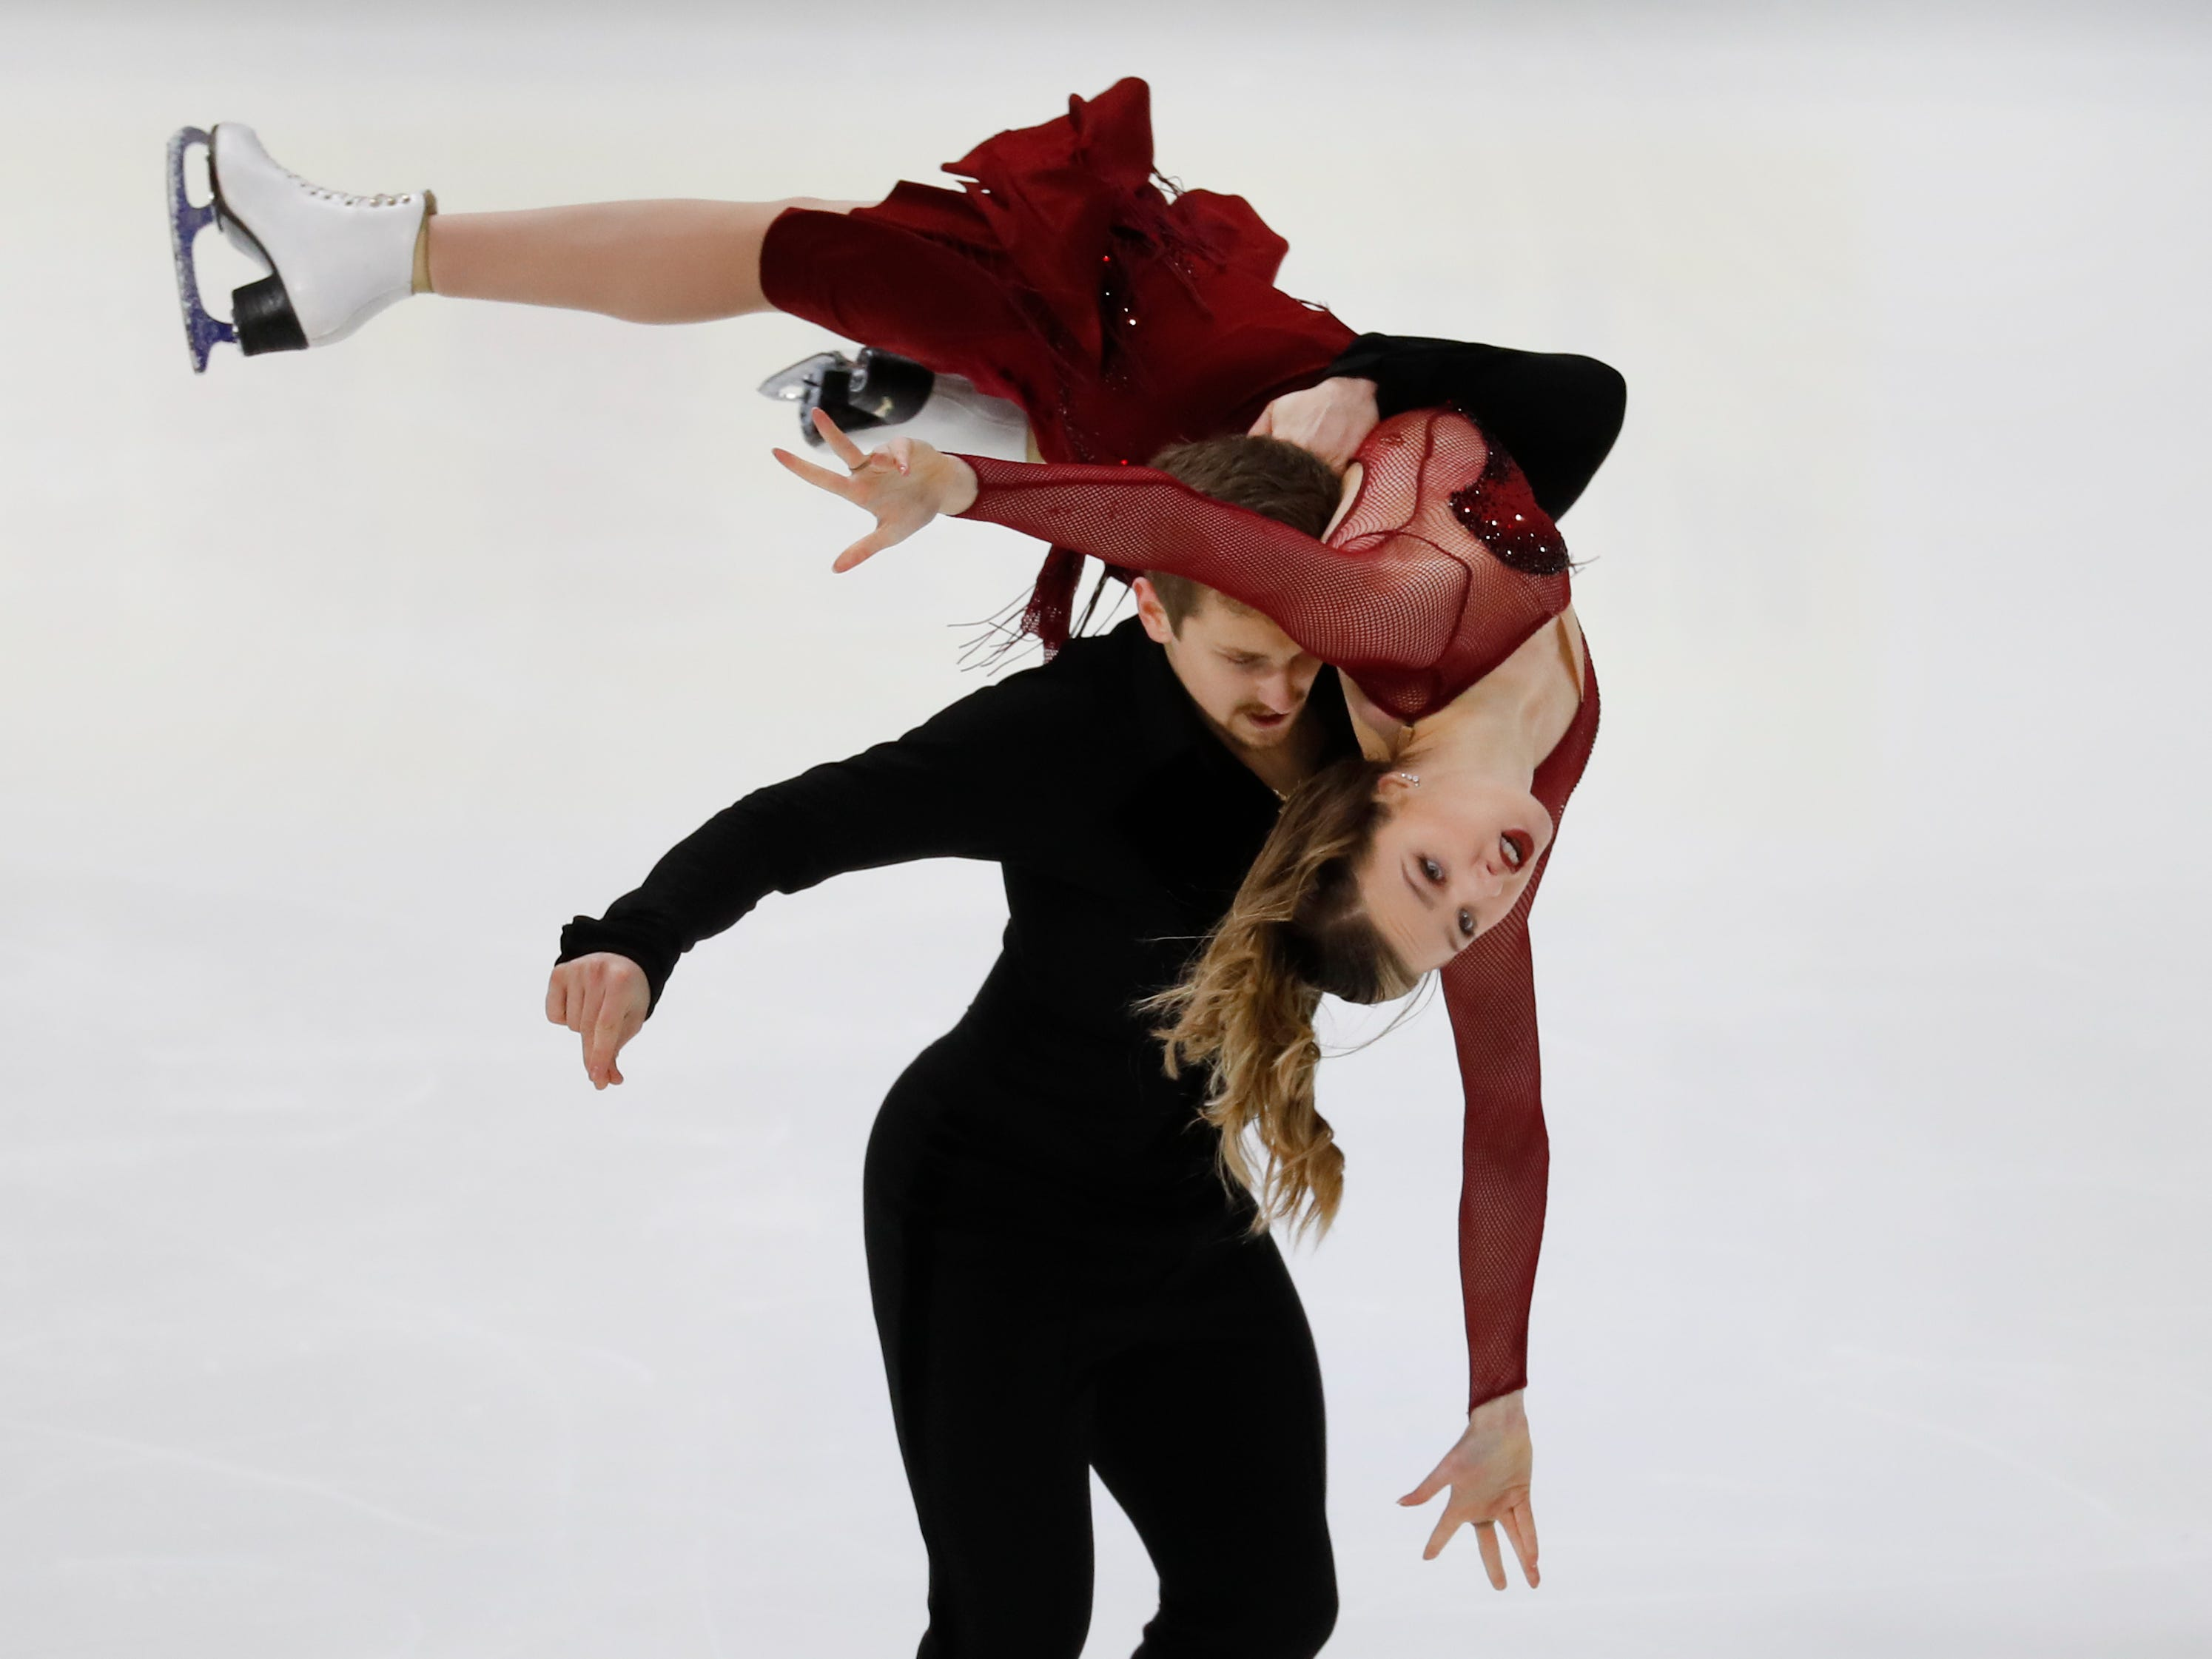 Christina Carreira and Anthony Ponomarenko perform their rhythm dance program at the U.S. Figure Skating Championships.